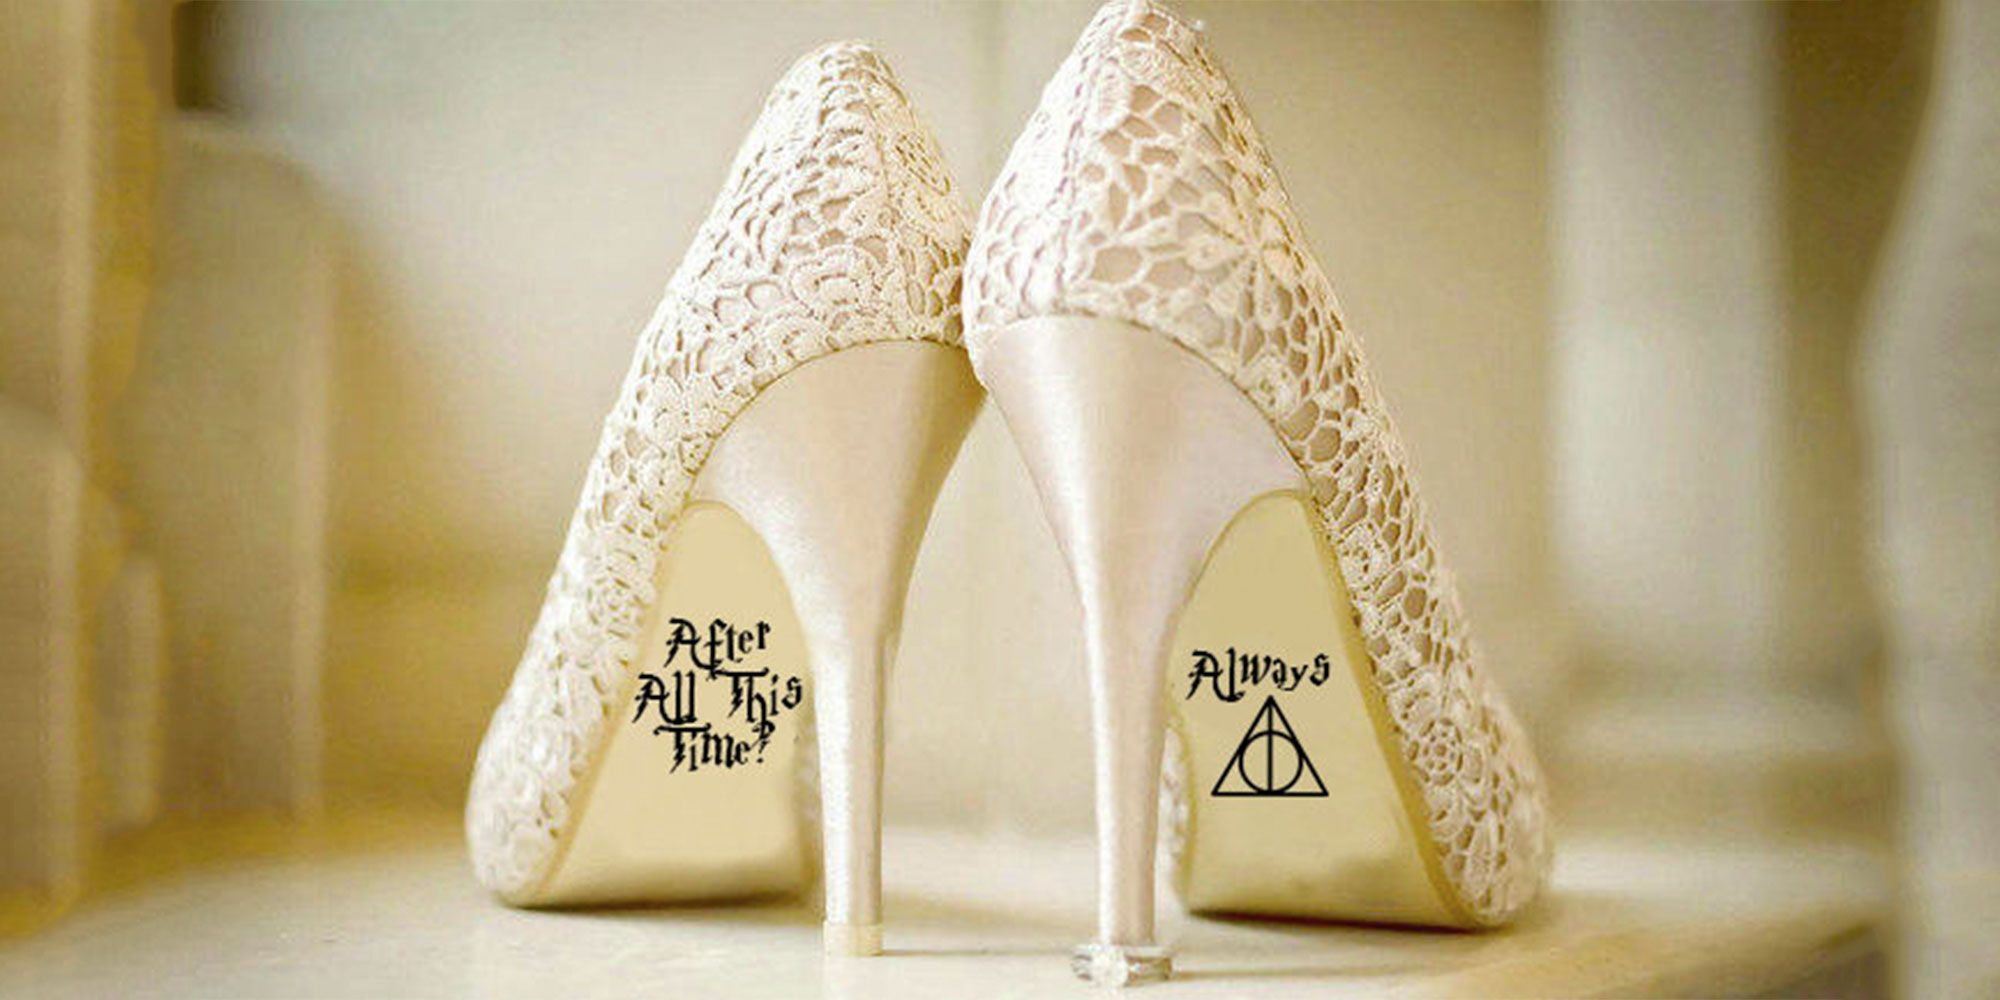 These Harry Potter Always Stickers For Your Wedding Shoes Are The Cutest Thing